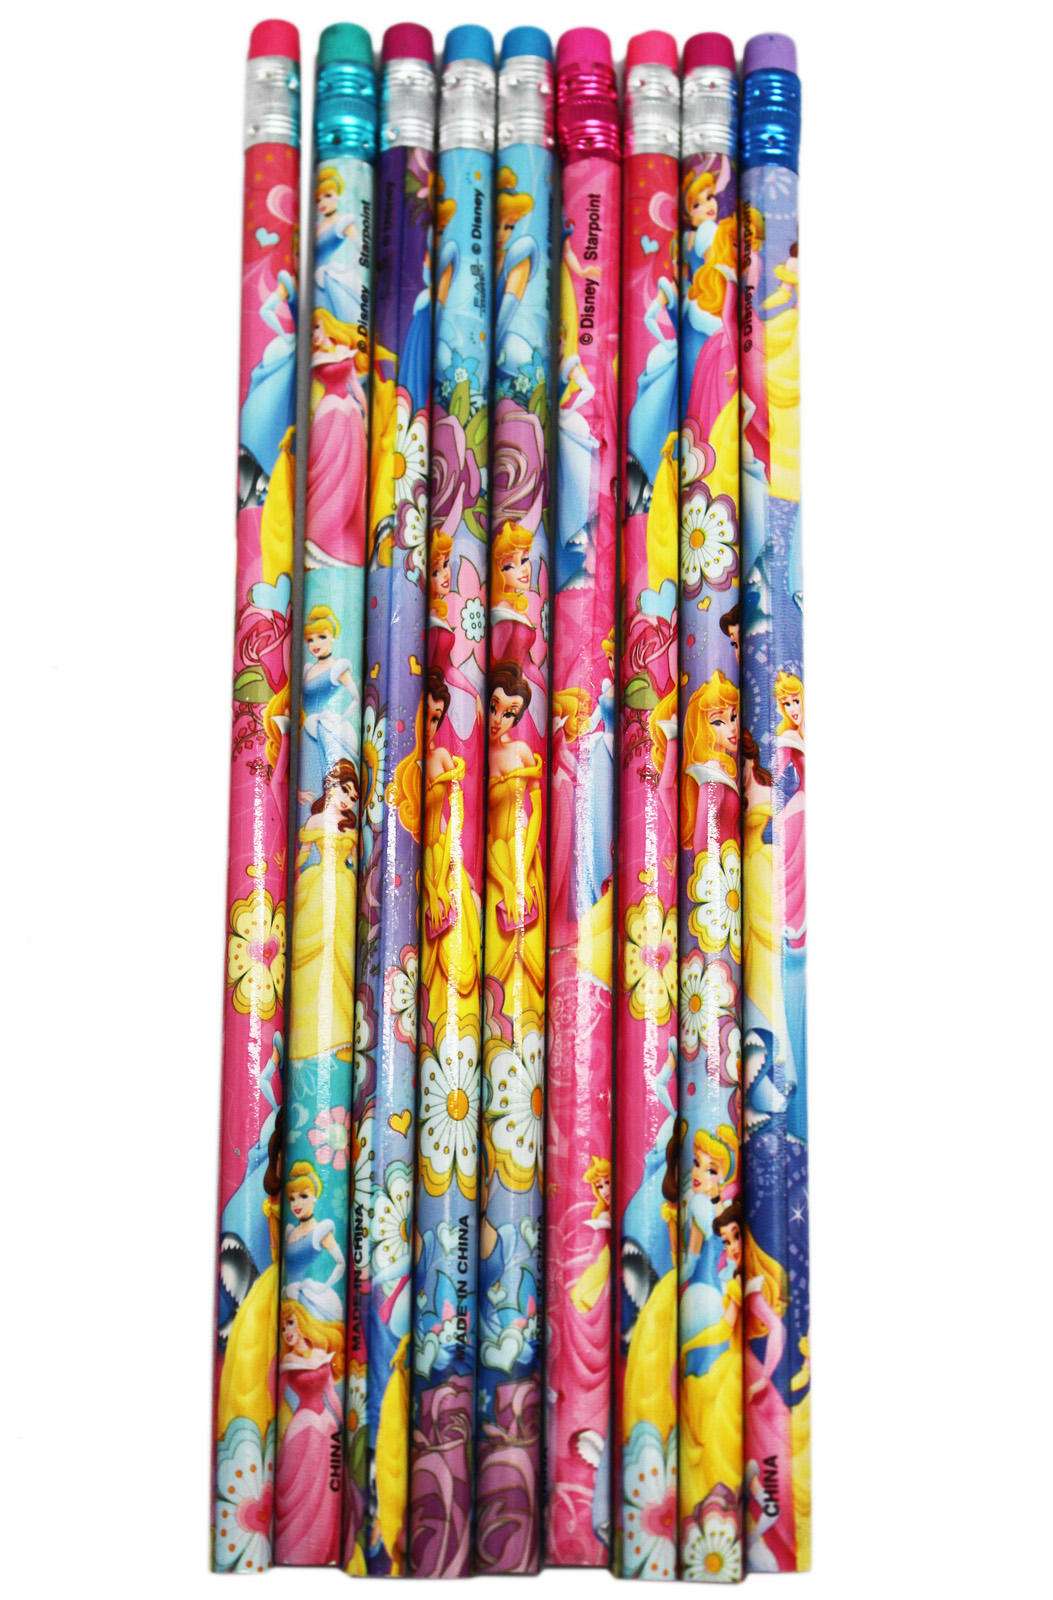 Disney Princess Bright and Colorful Assorted Wooden Pencils (9pc) by